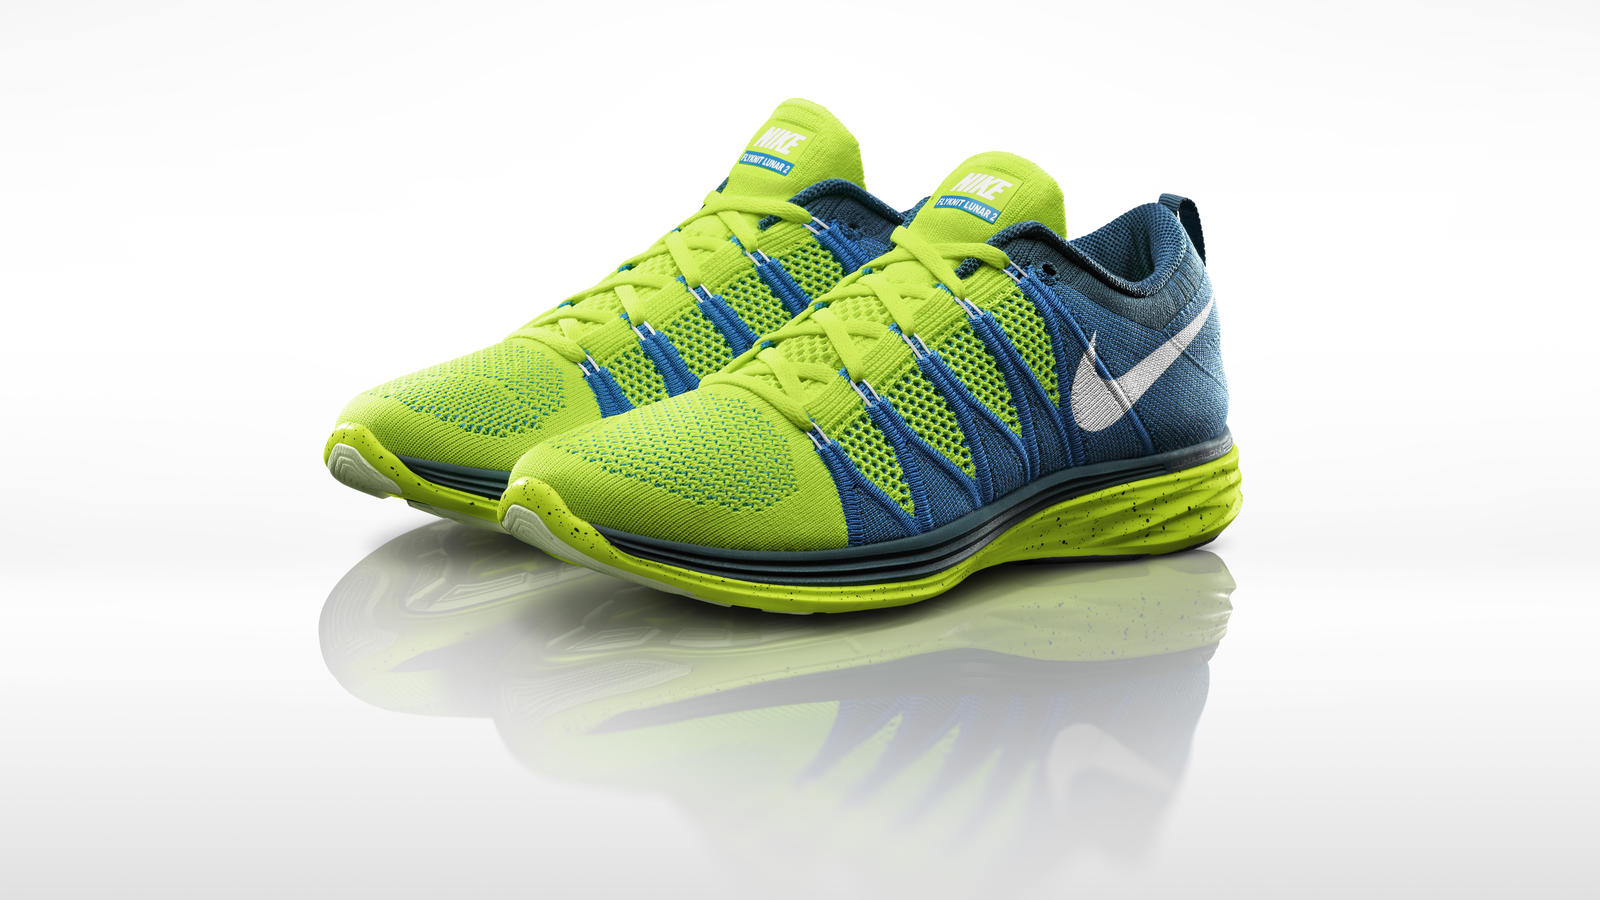 nike flyknit lunar2 shoes sp14 cushion running shoes yellow white